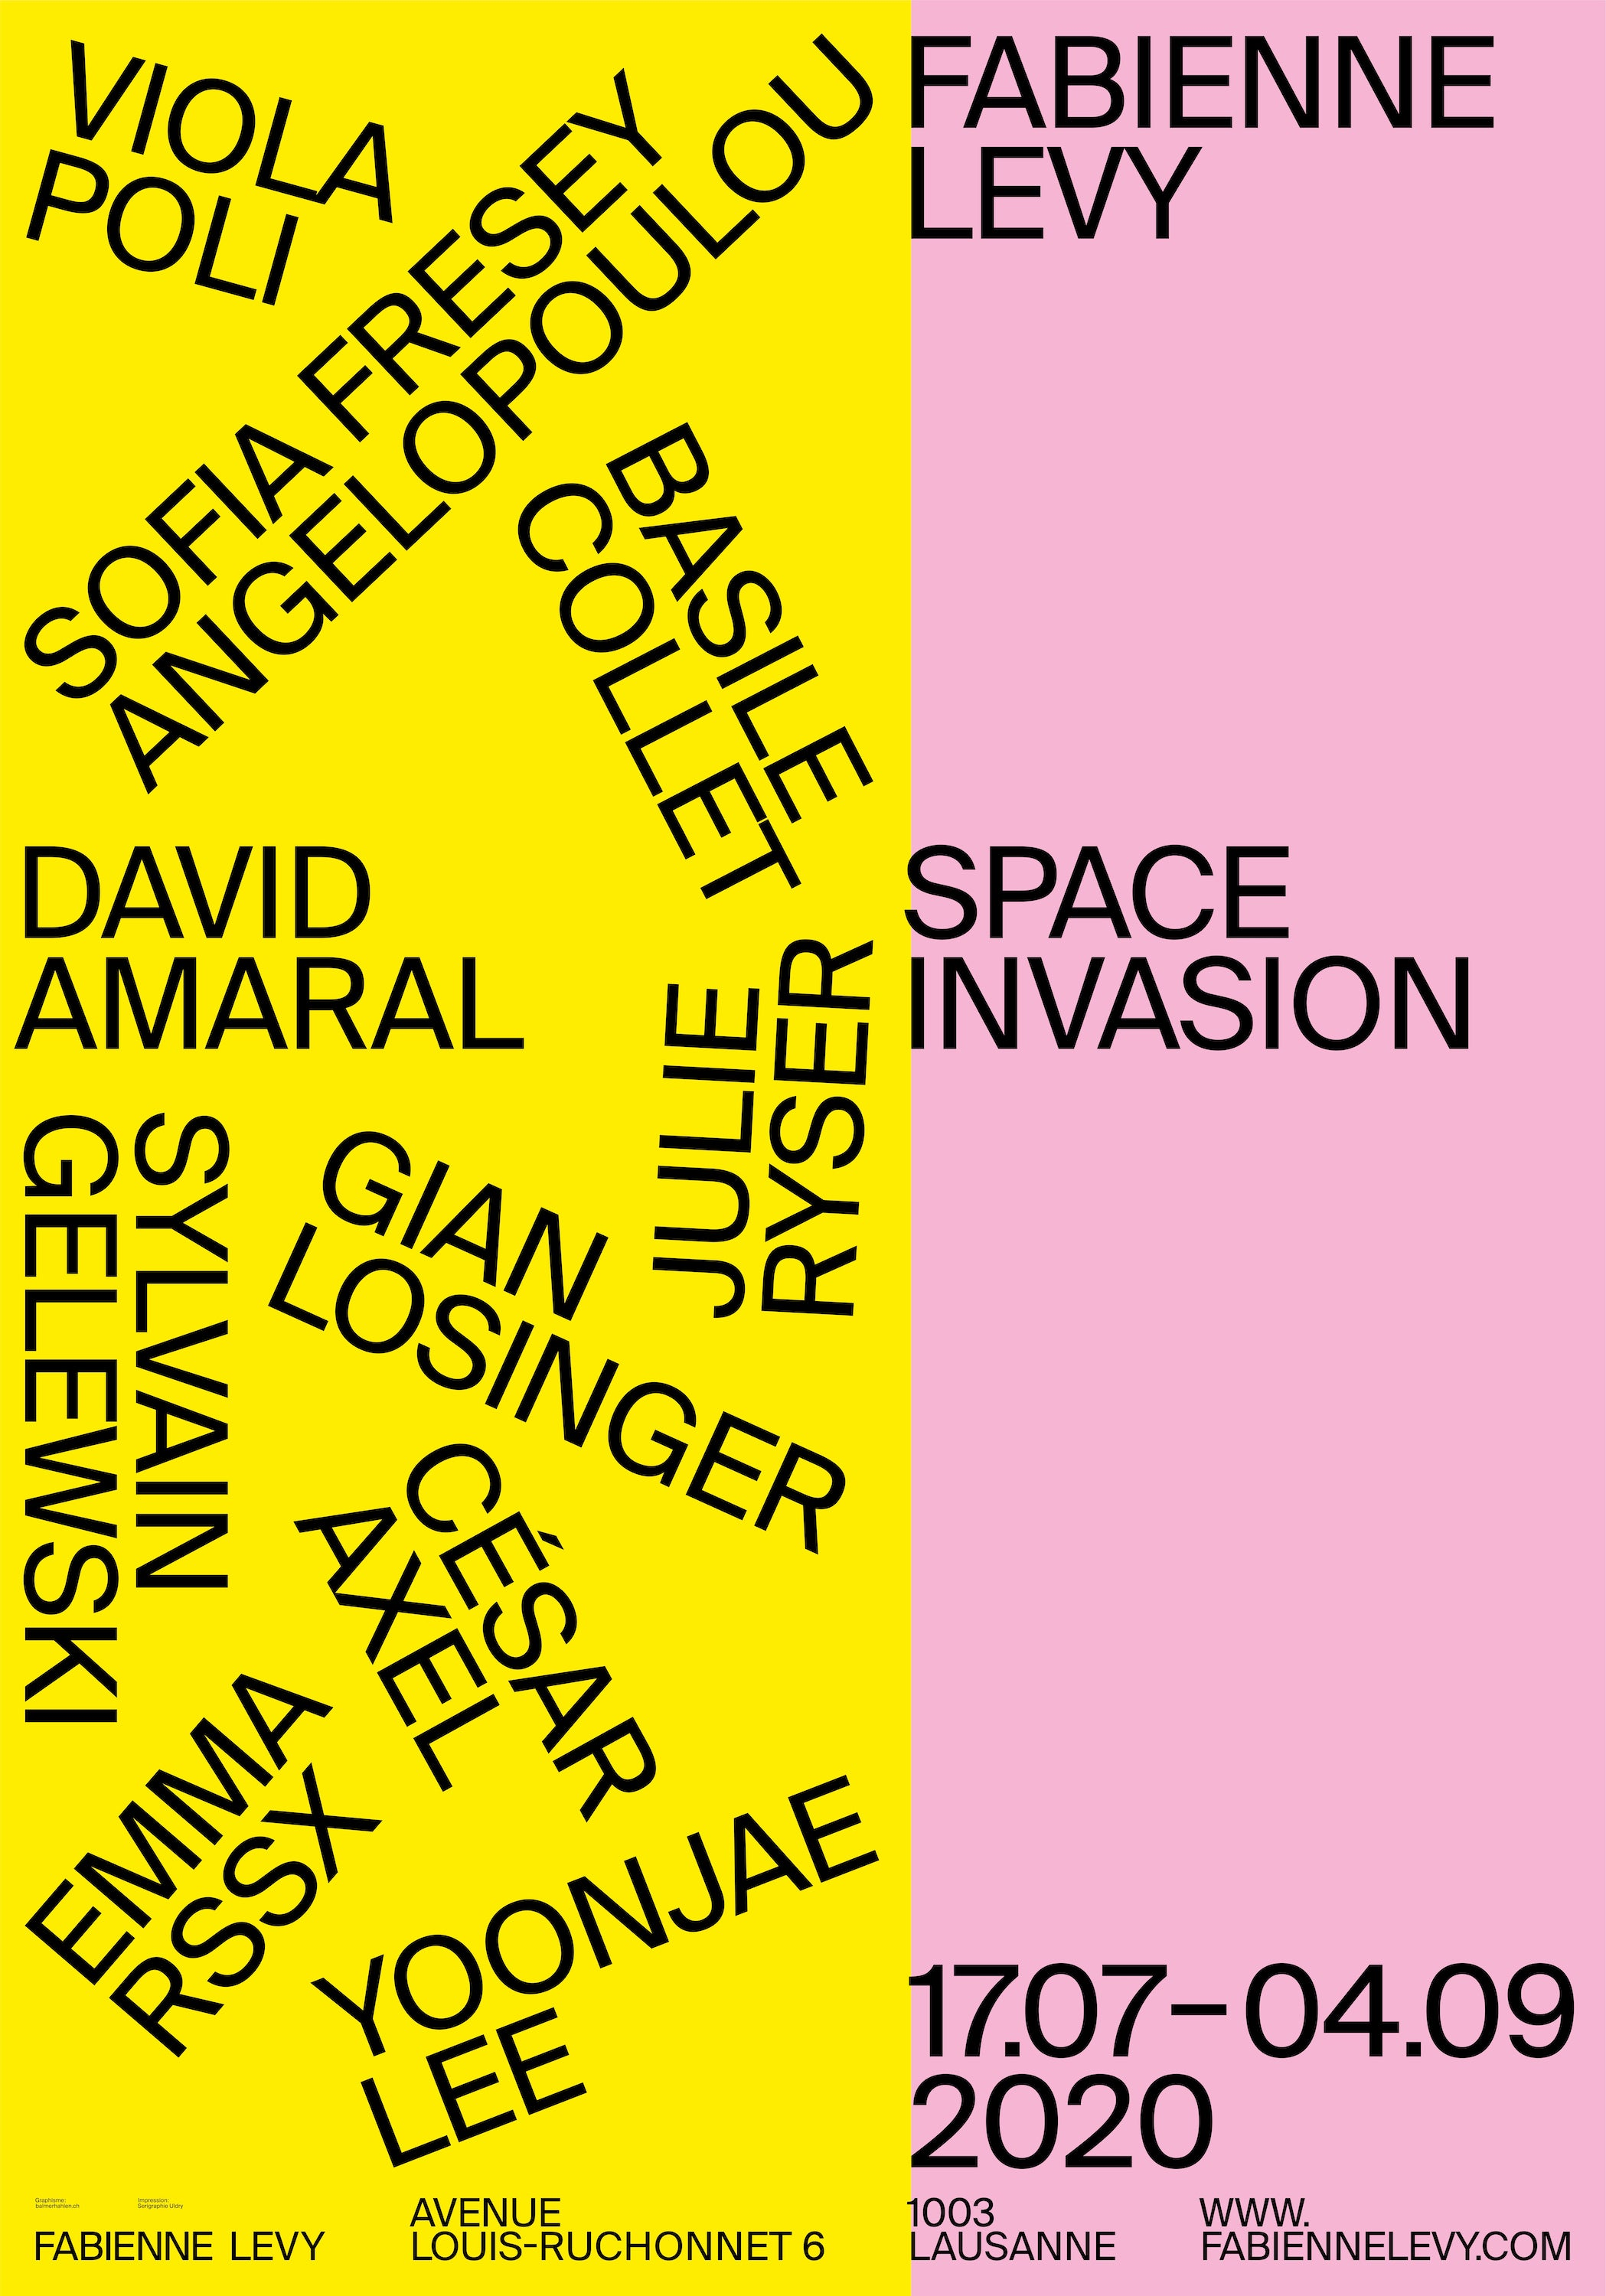 Space Invasion - Show & Statement Posters